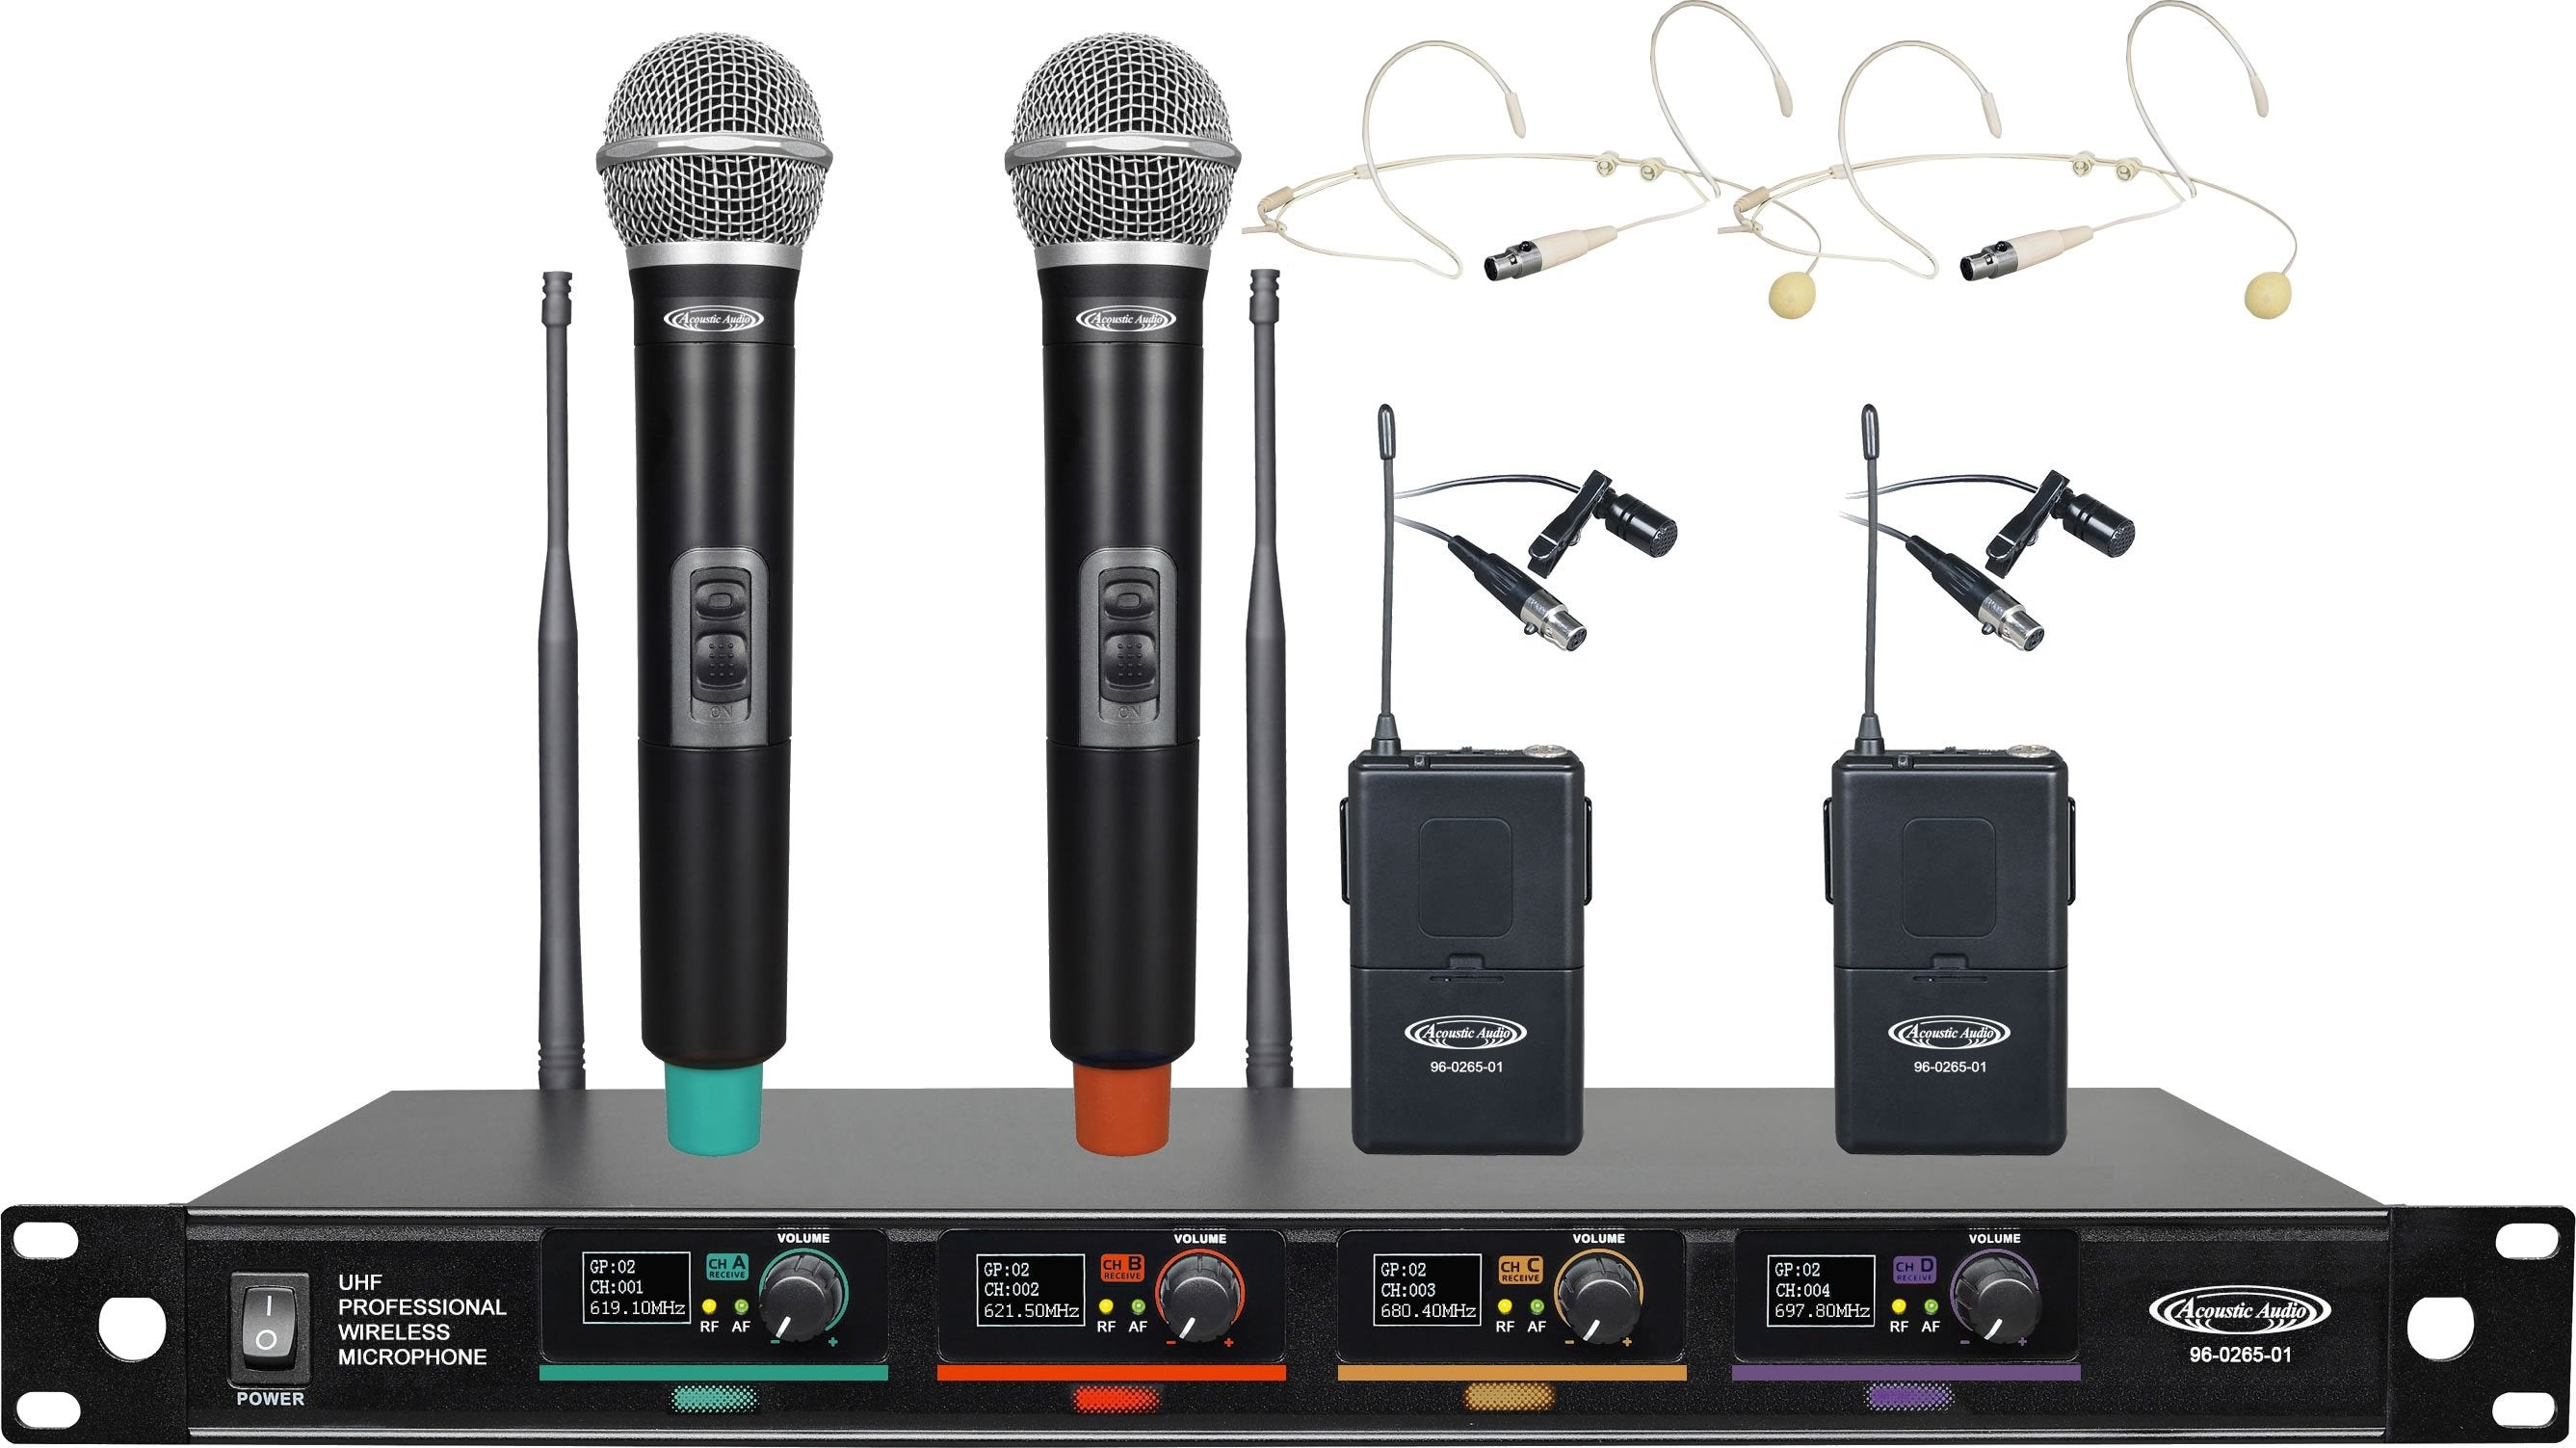 96-0265 UHF Professional Wireless Microphone Systems - 4*Wireless Microphones